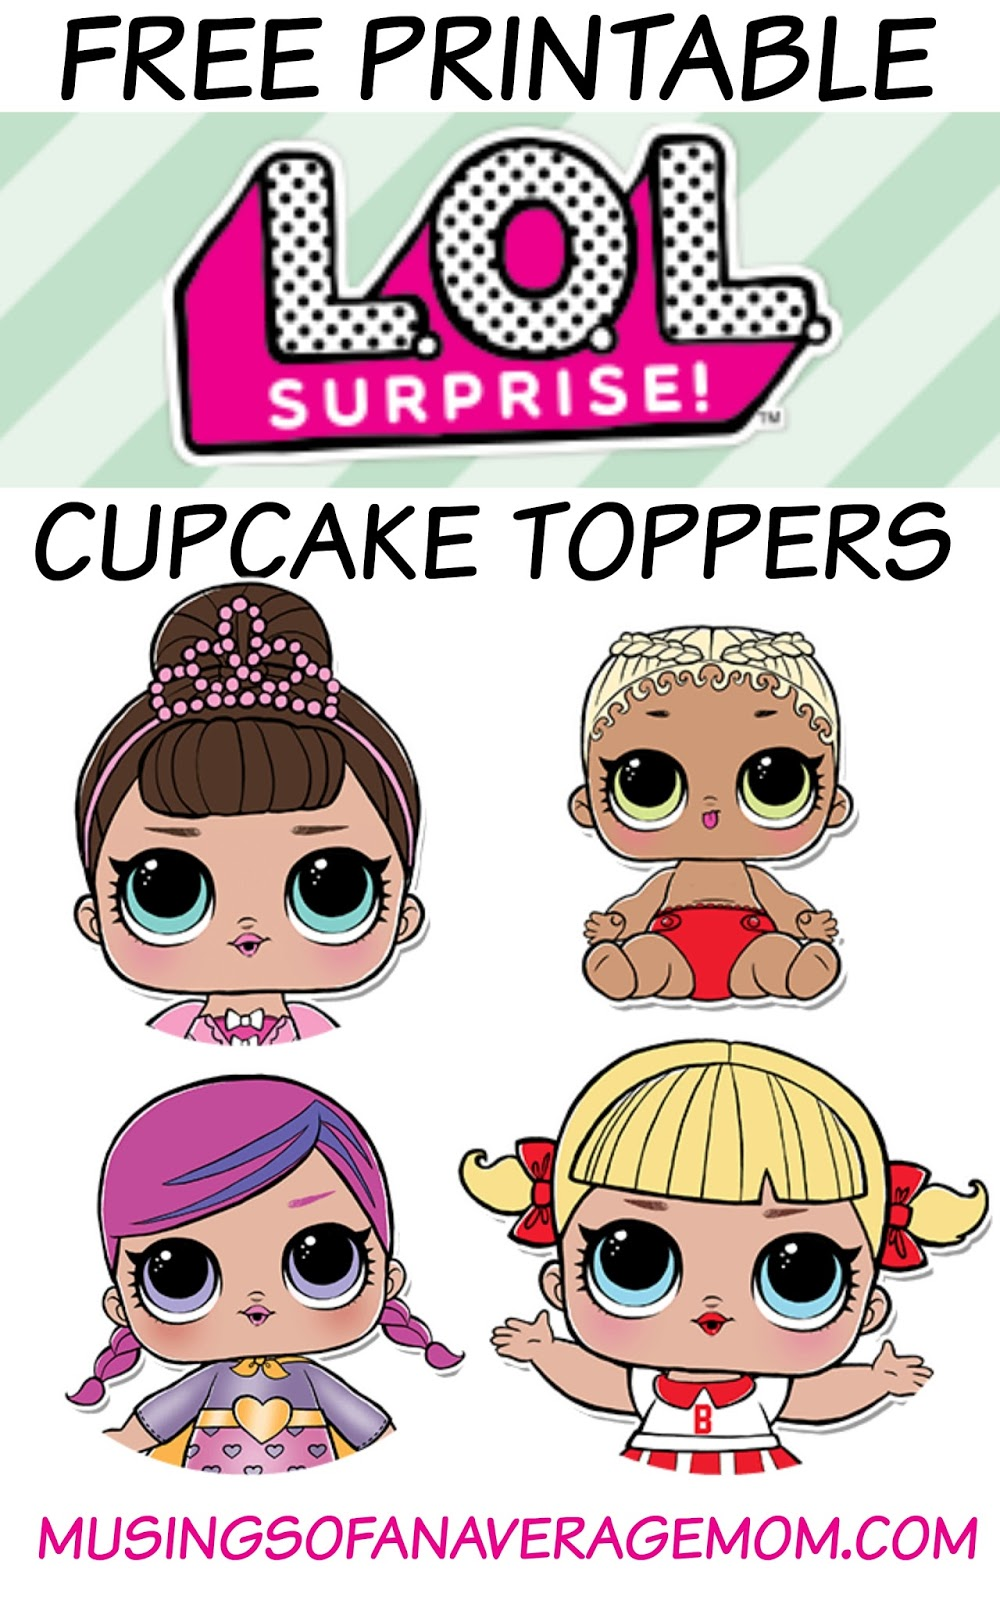 Musings of an Average Mom: L.O.L. surprise cupcake toppers